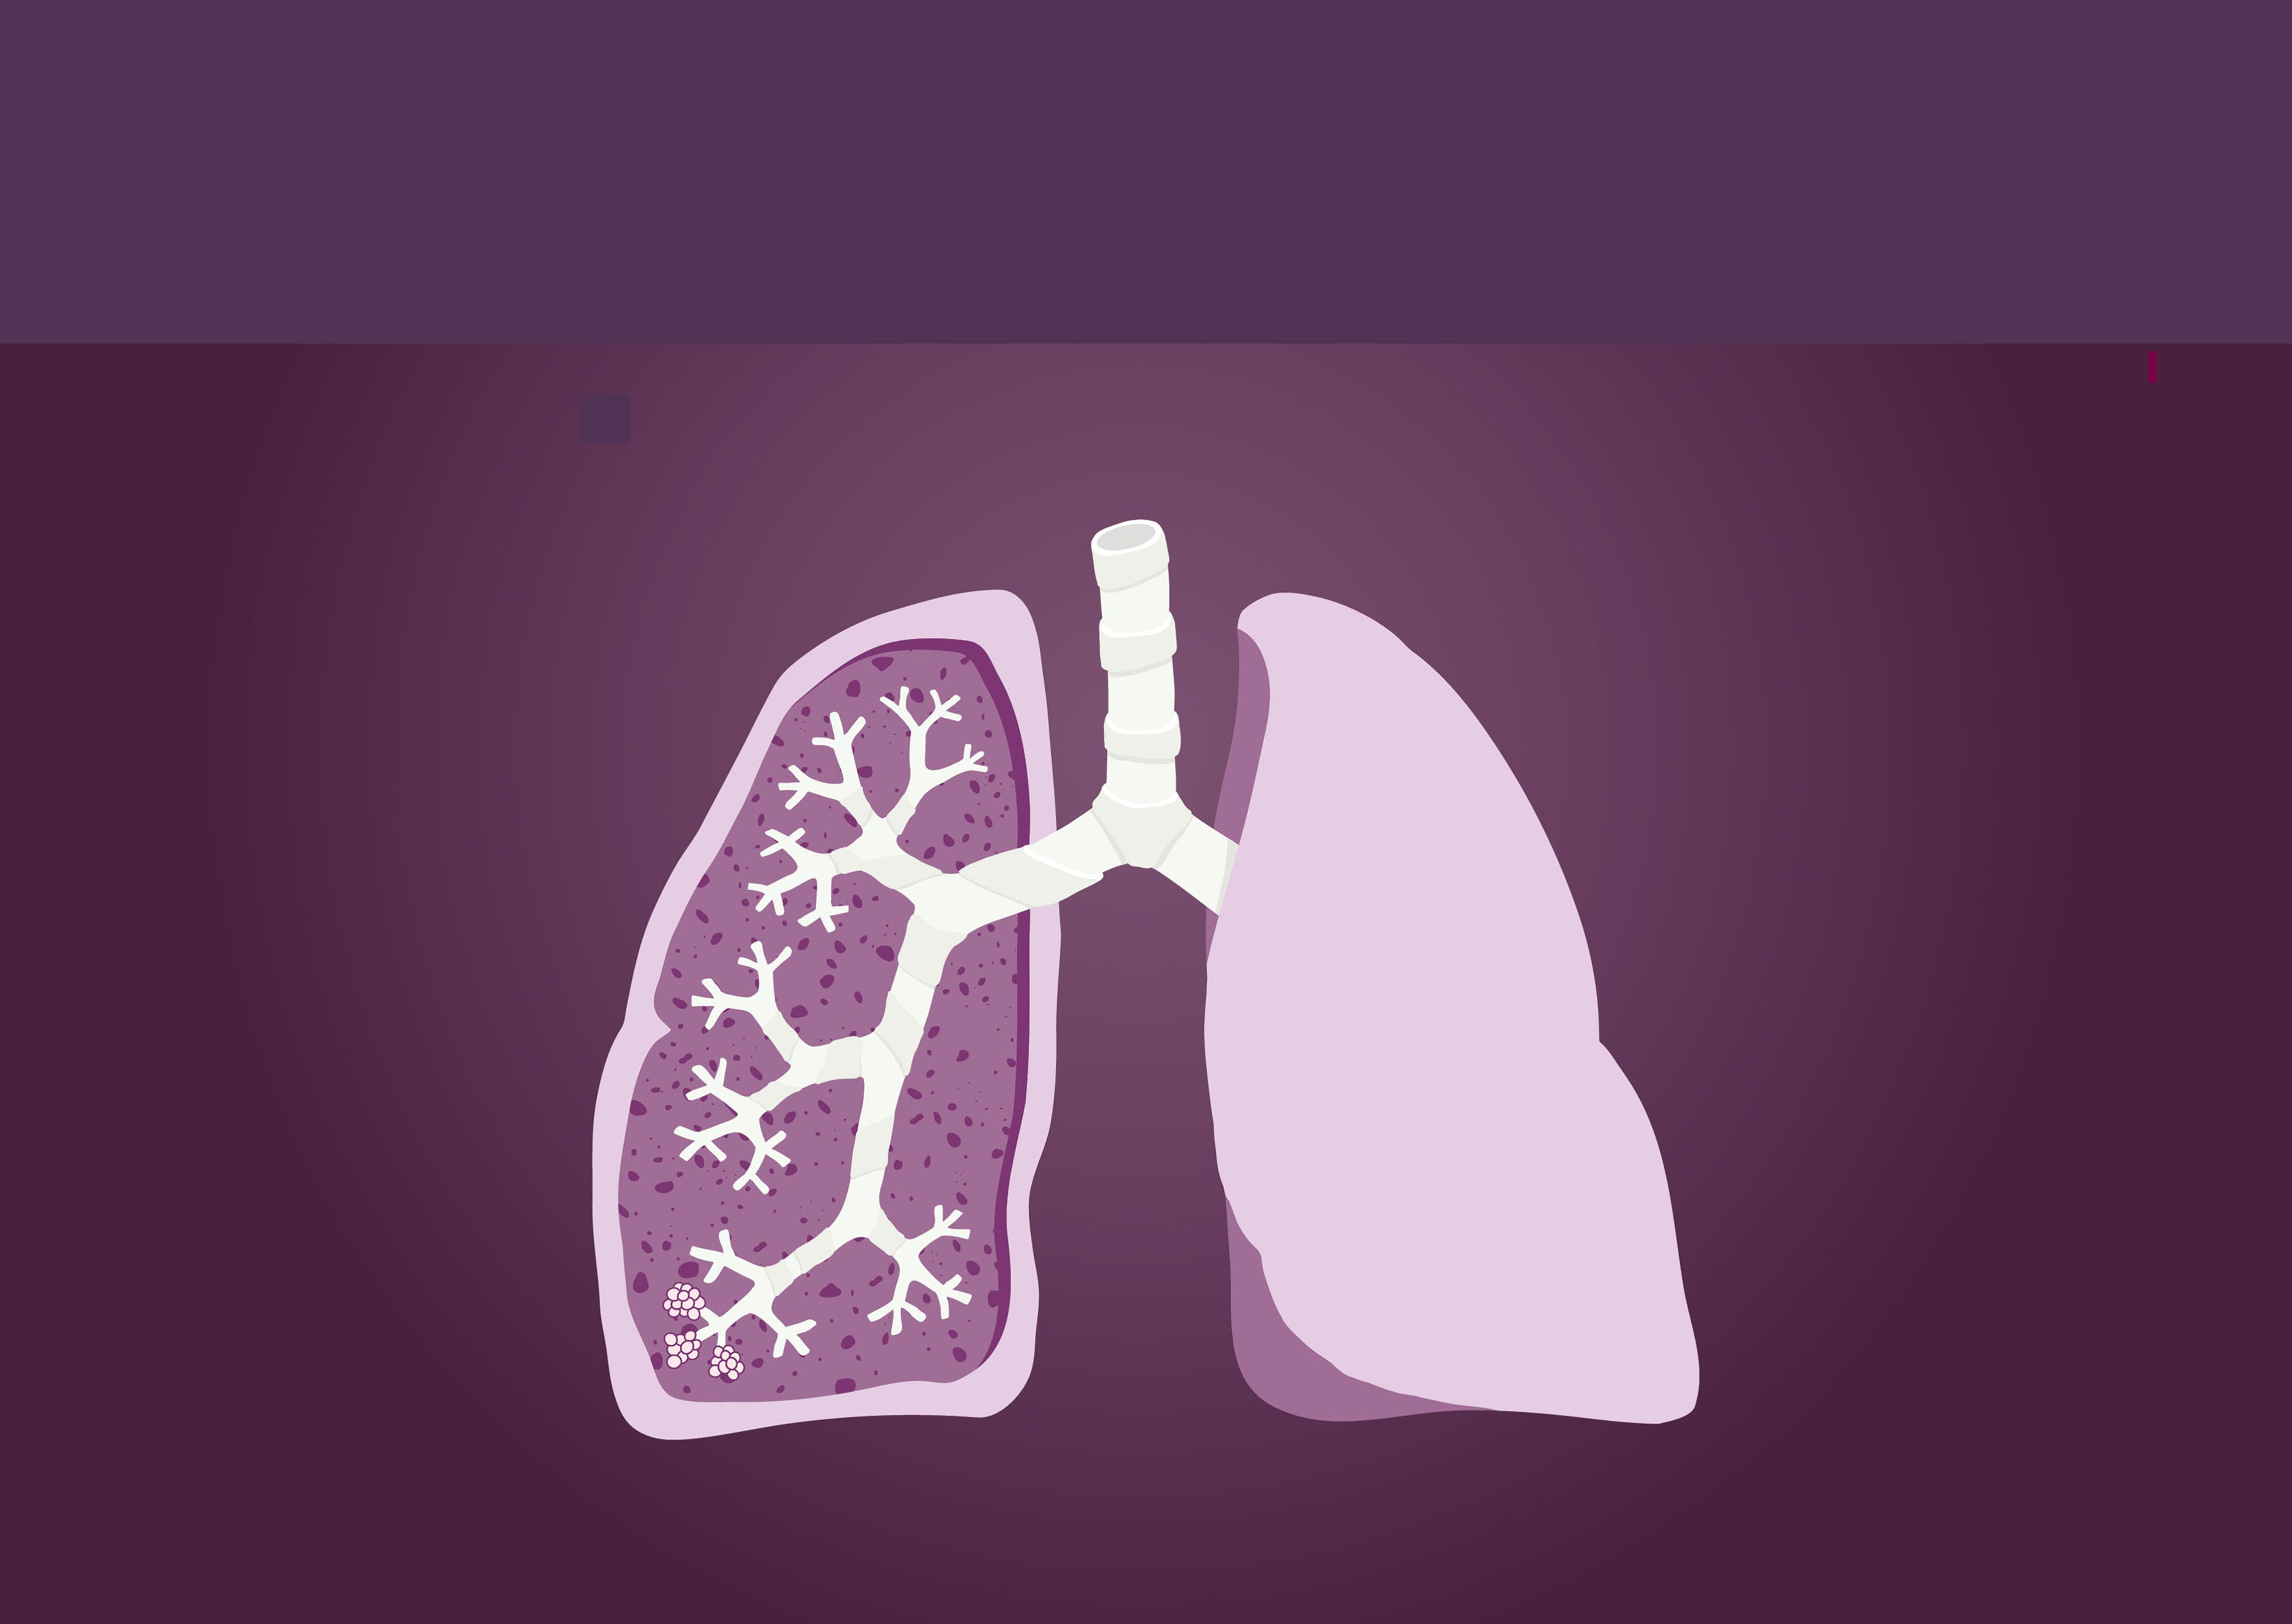 COPD_image